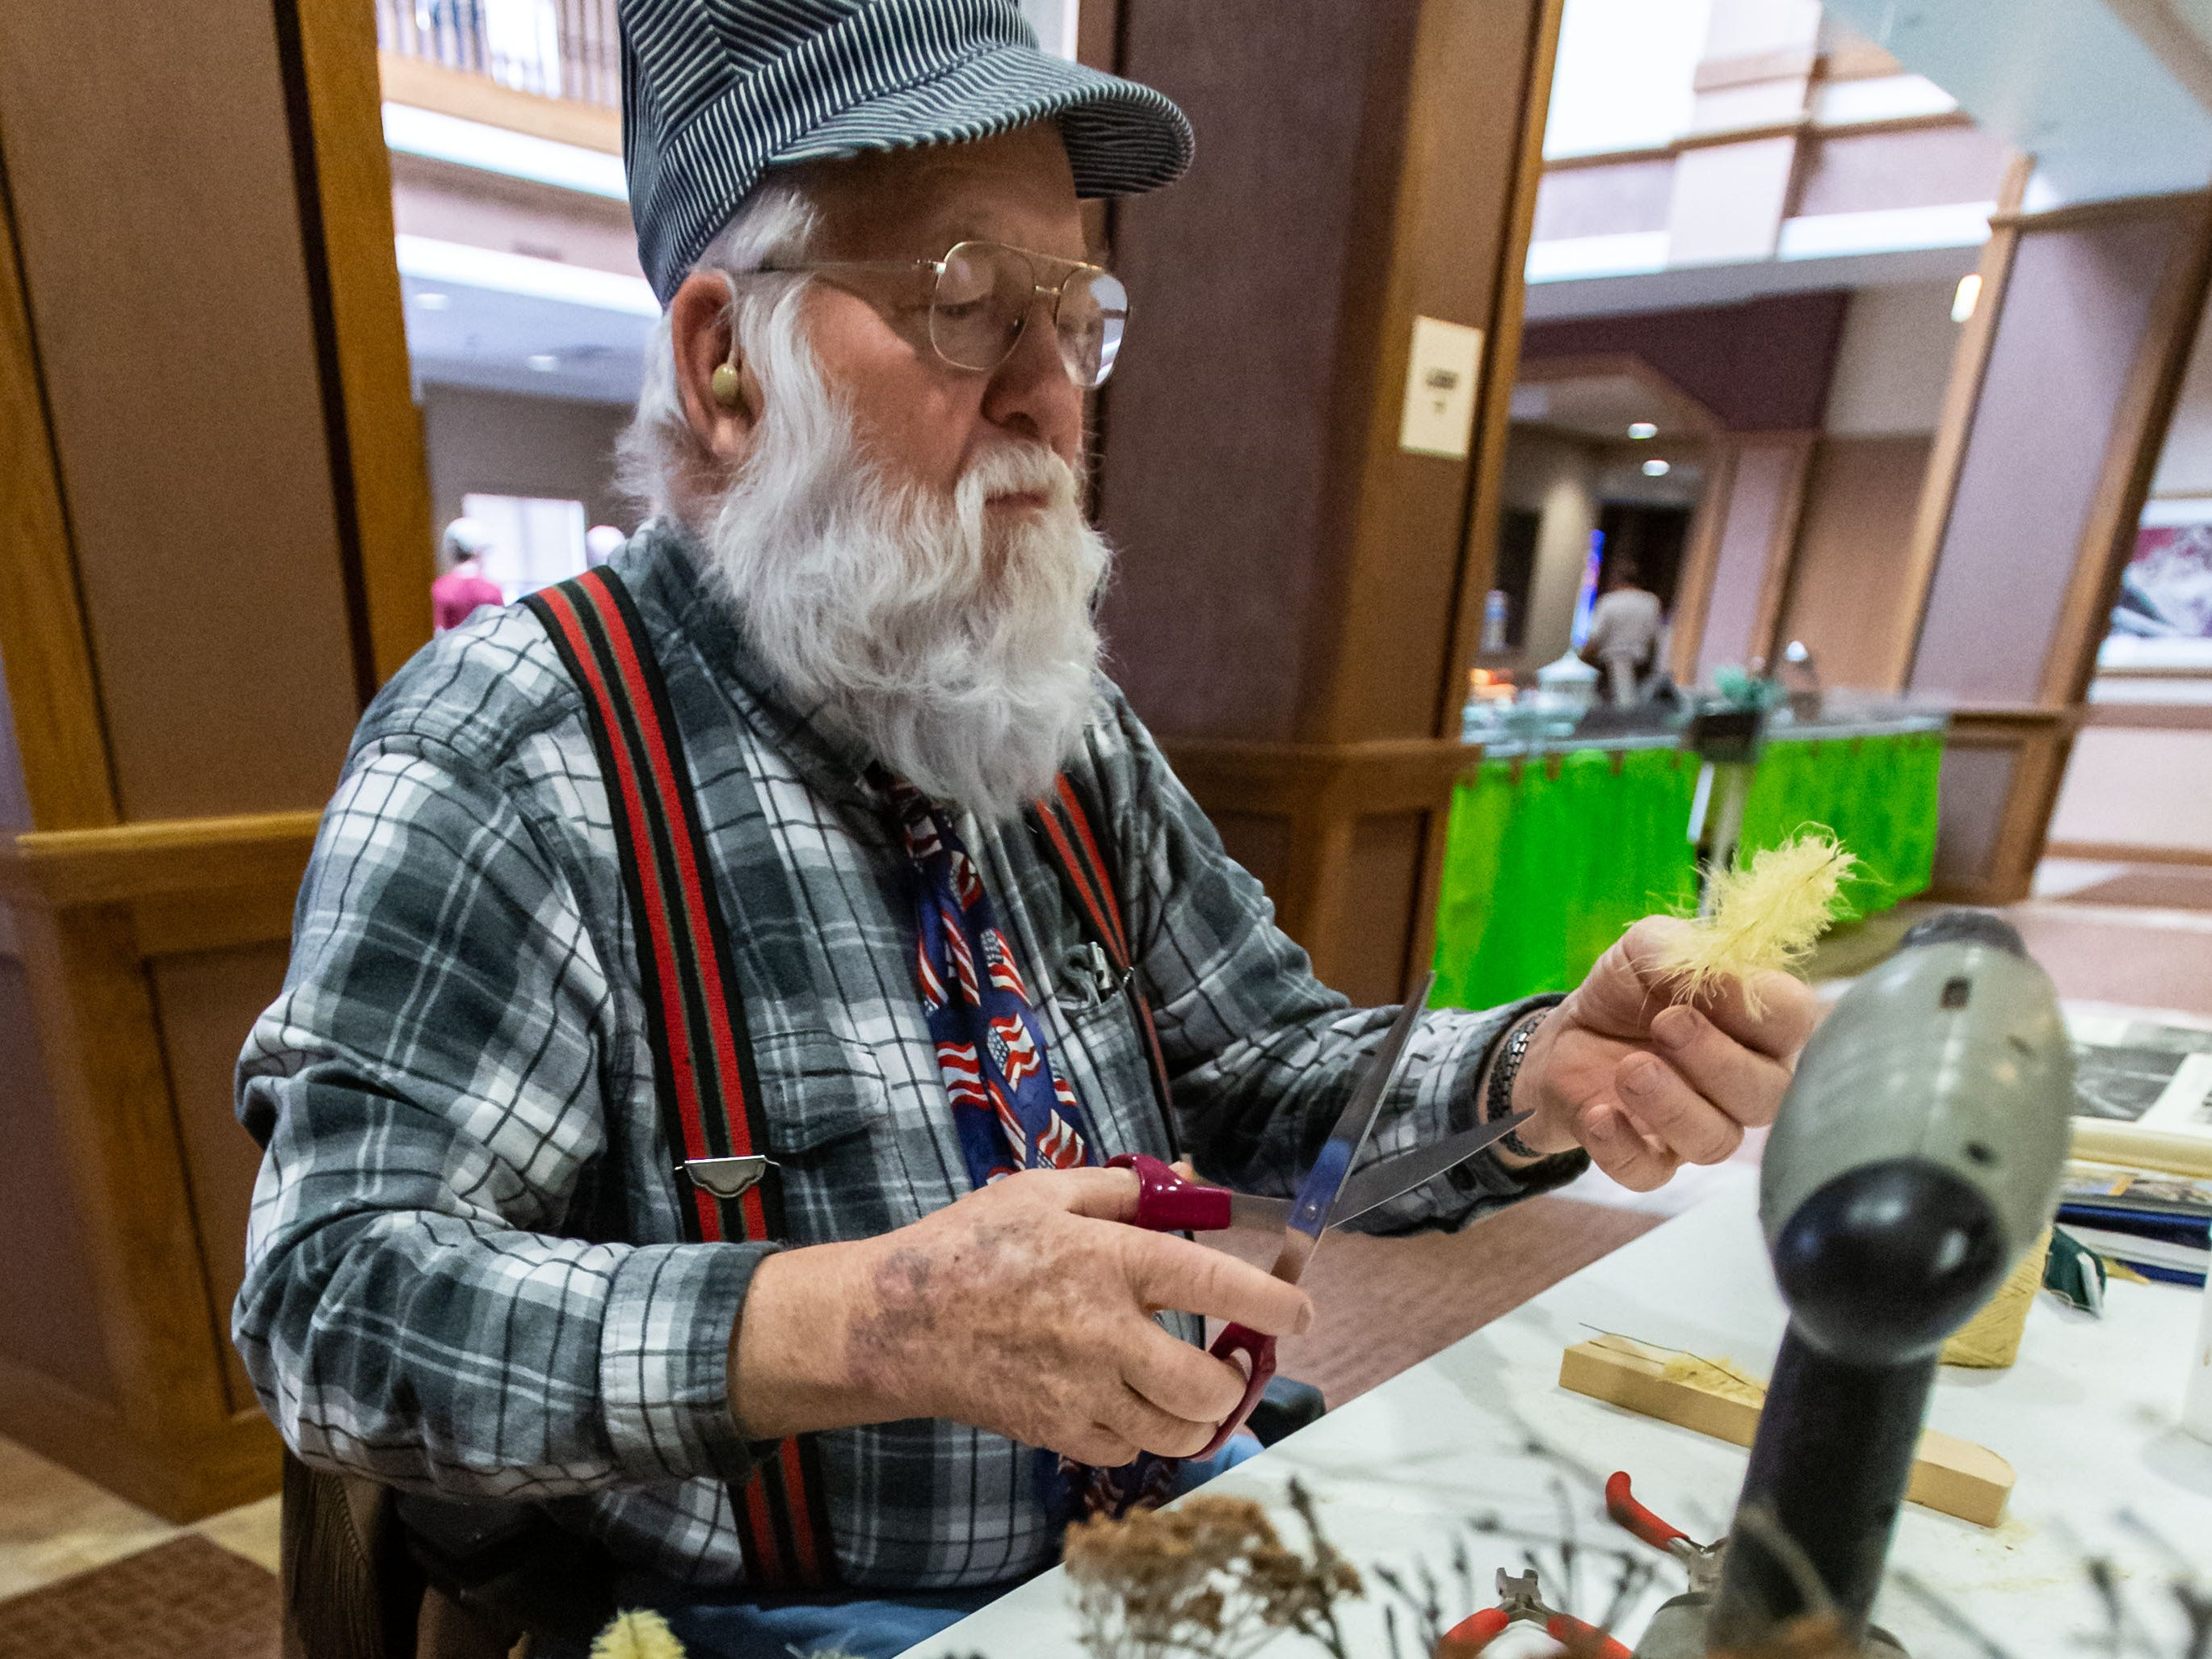 Richard Pyka of Ixonia uses twine and wire to create miniature trees during the Trains, Tracks and Switches exhibit at Shorehaven Health and Rehabilitation Center in Oconomowoc on Thursday, March 28, 2019. The annual three-day event, inspired by lead engineer and former Shorehaven resident Mert Leet, features model diesel and steam engine train sets and railroad memorabilia.